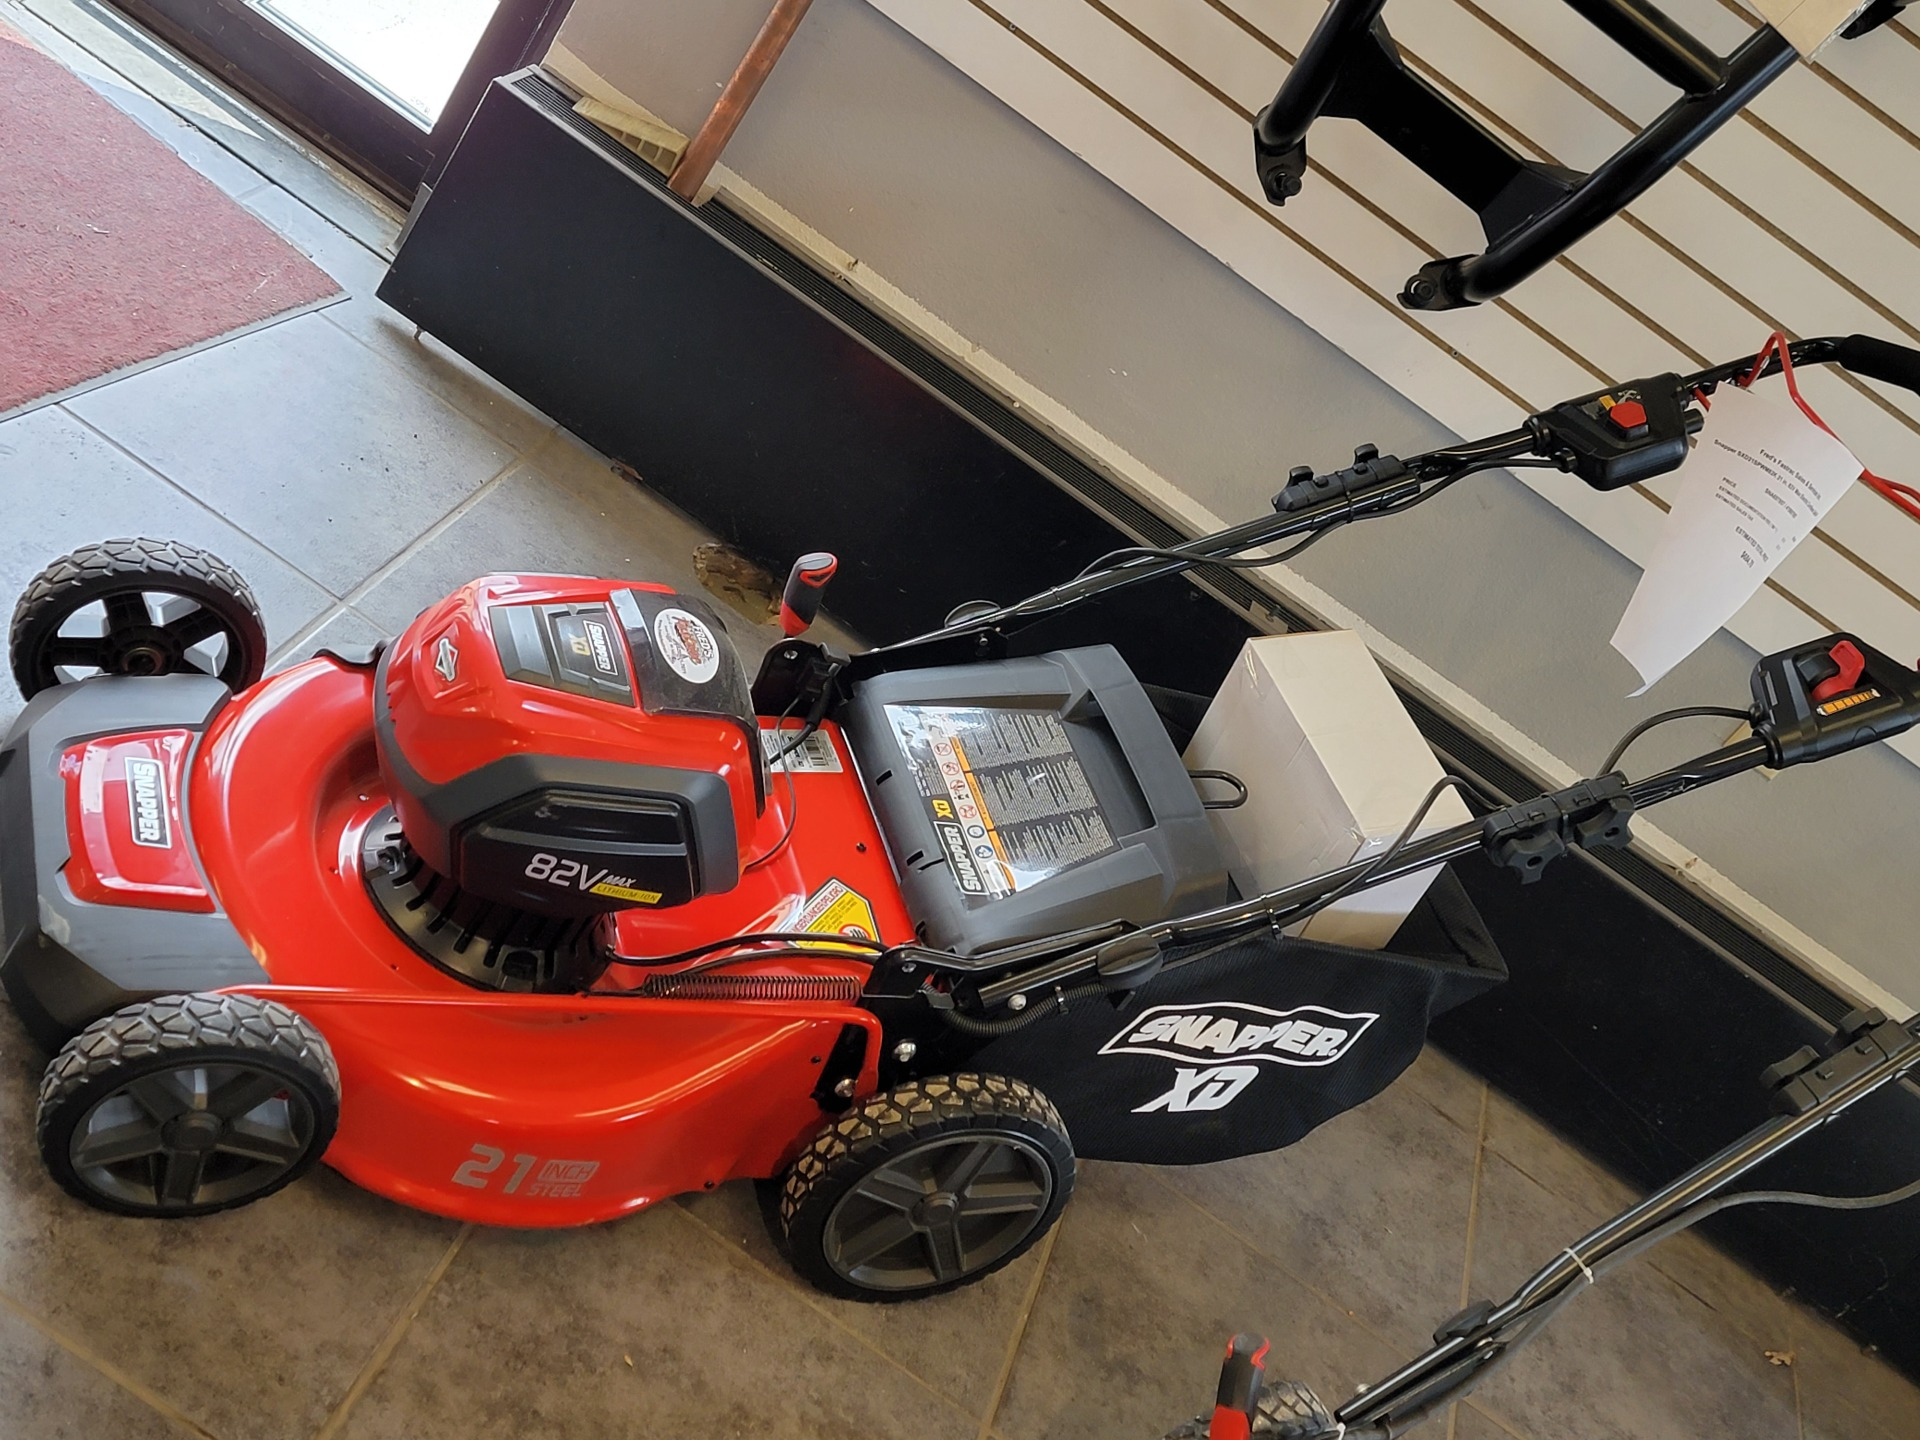 Snapper SXD21SPWM82K 21 in. 82V Max Electric Cordless Self-Propelled in Fond Du Lac, Wisconsin - Photo 2